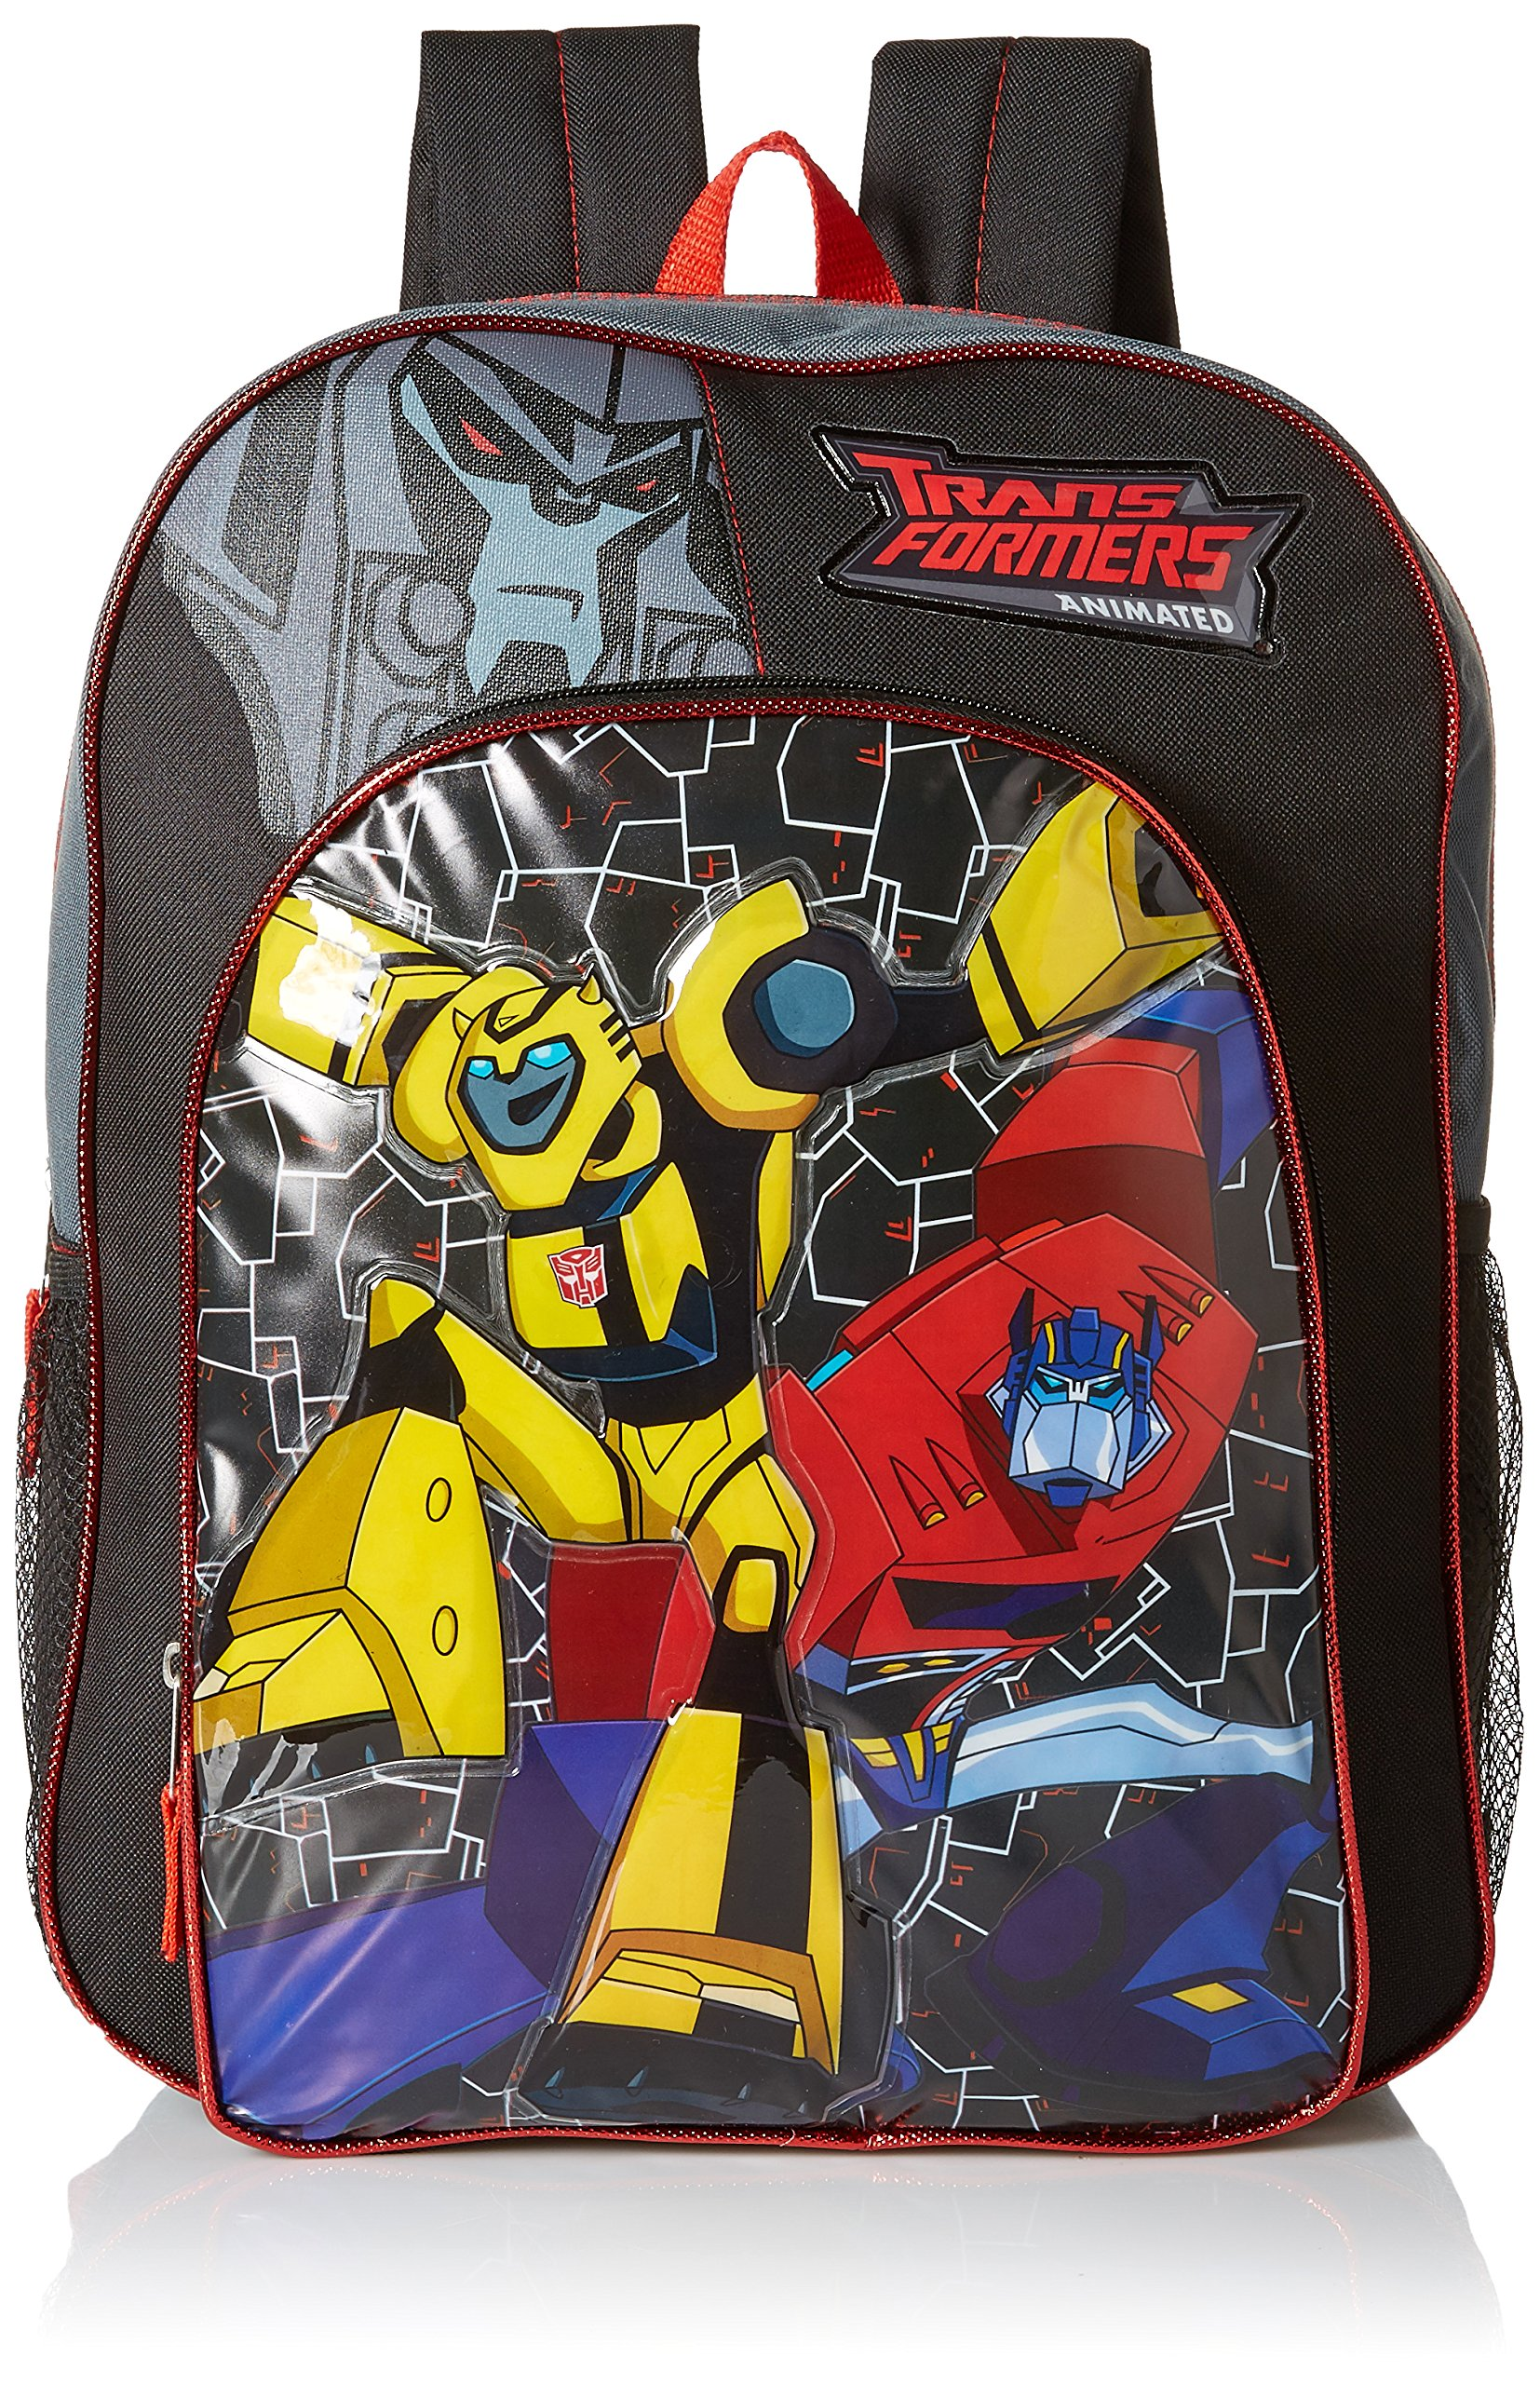 Backpack Transformer Black: Hasbro Boys' Transformers Backpack With Lights